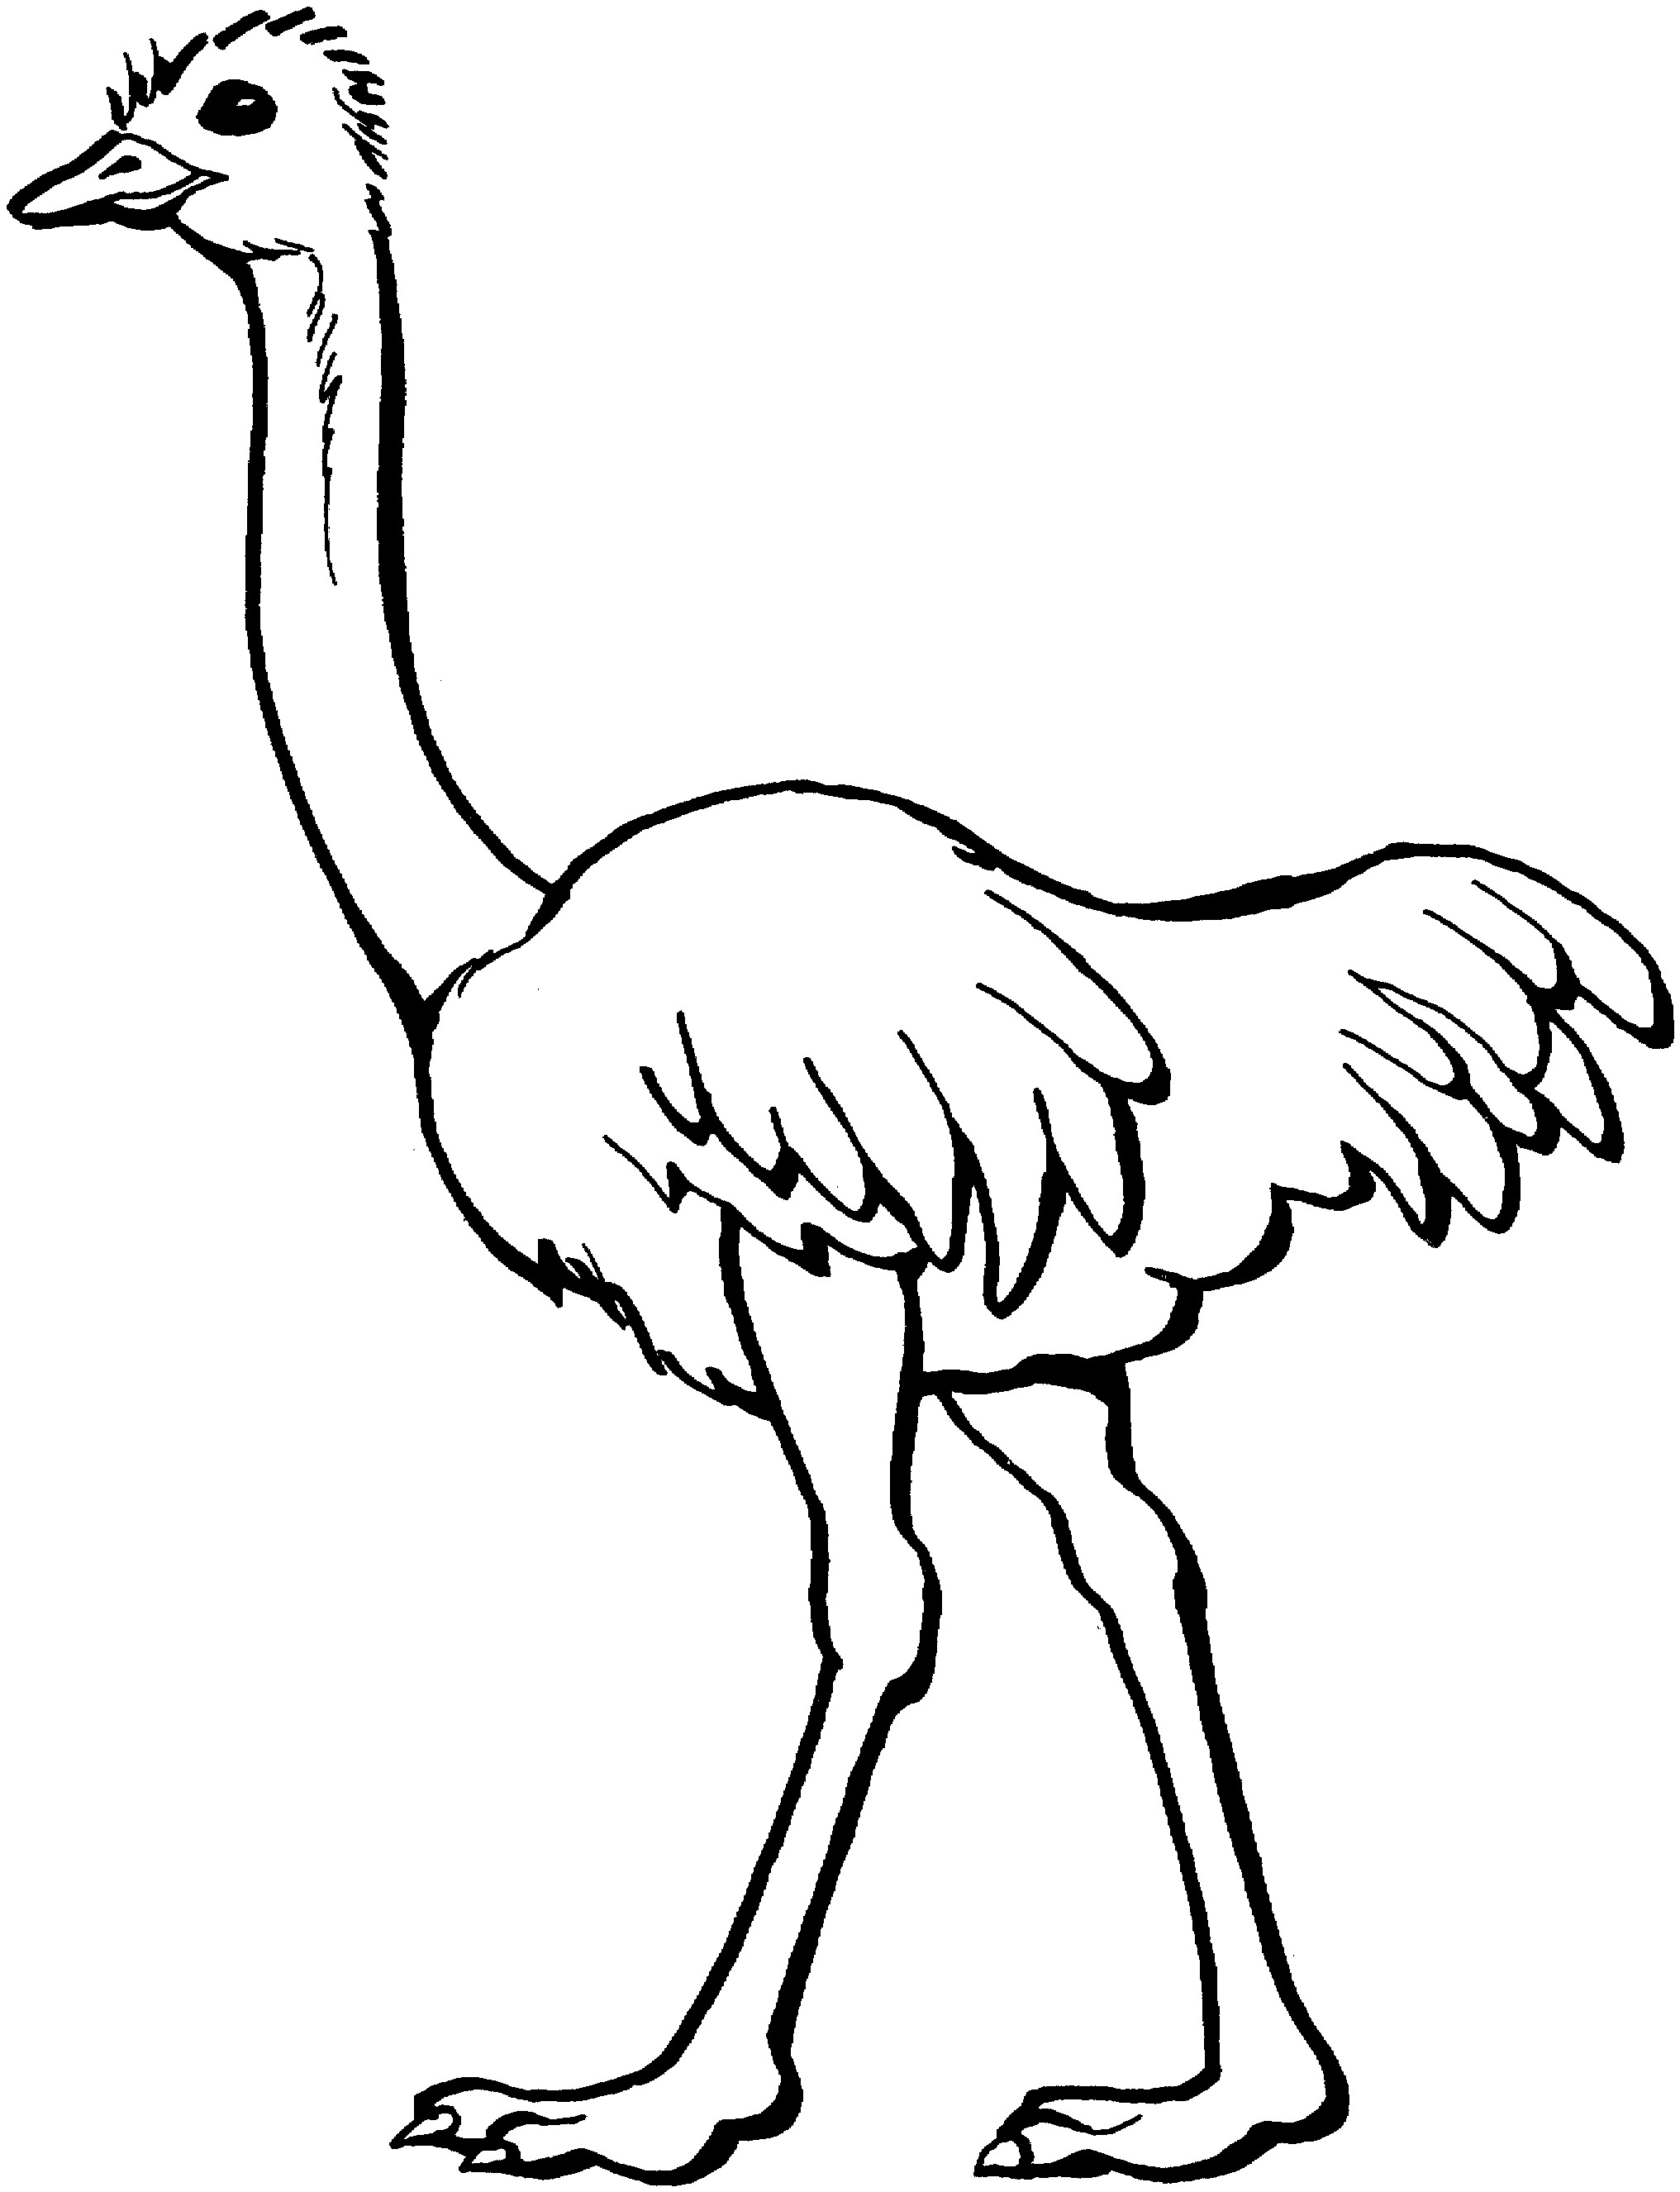 Ostrich coloring #17, Download drawings